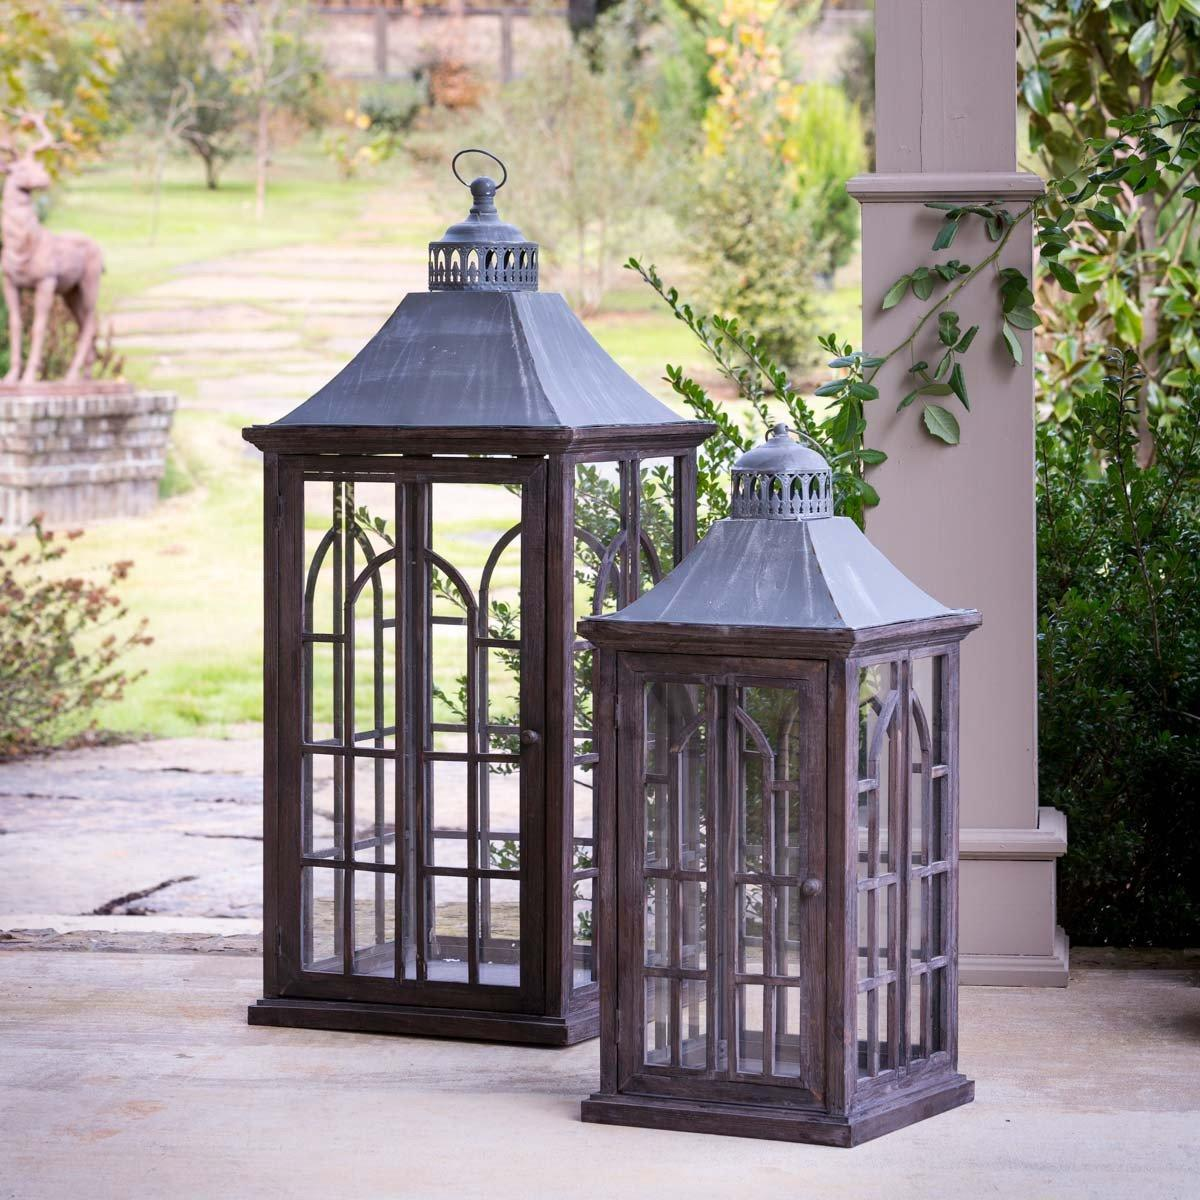 Palladian Window Estate Lanterns, Set of 2 Lanterns SIXTY PARK LANE